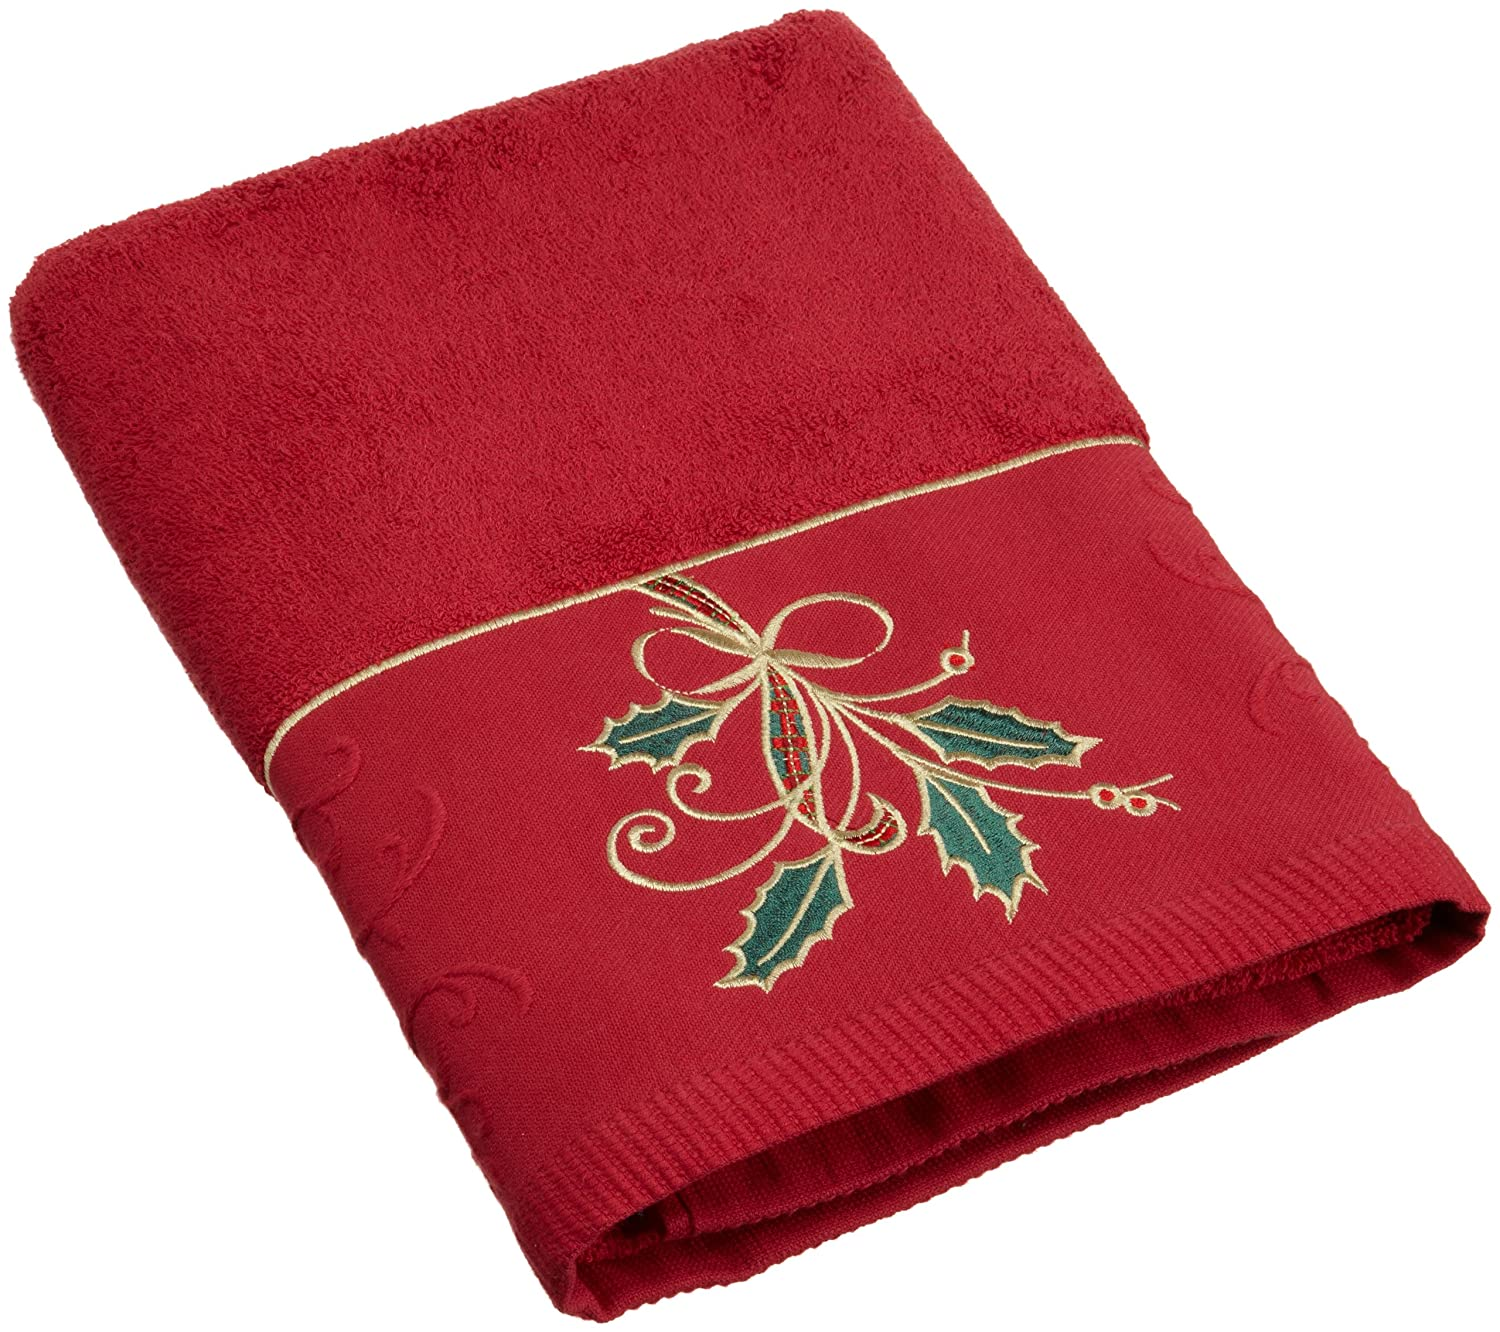 Ribbon and Holly Embroidered Bath Towel